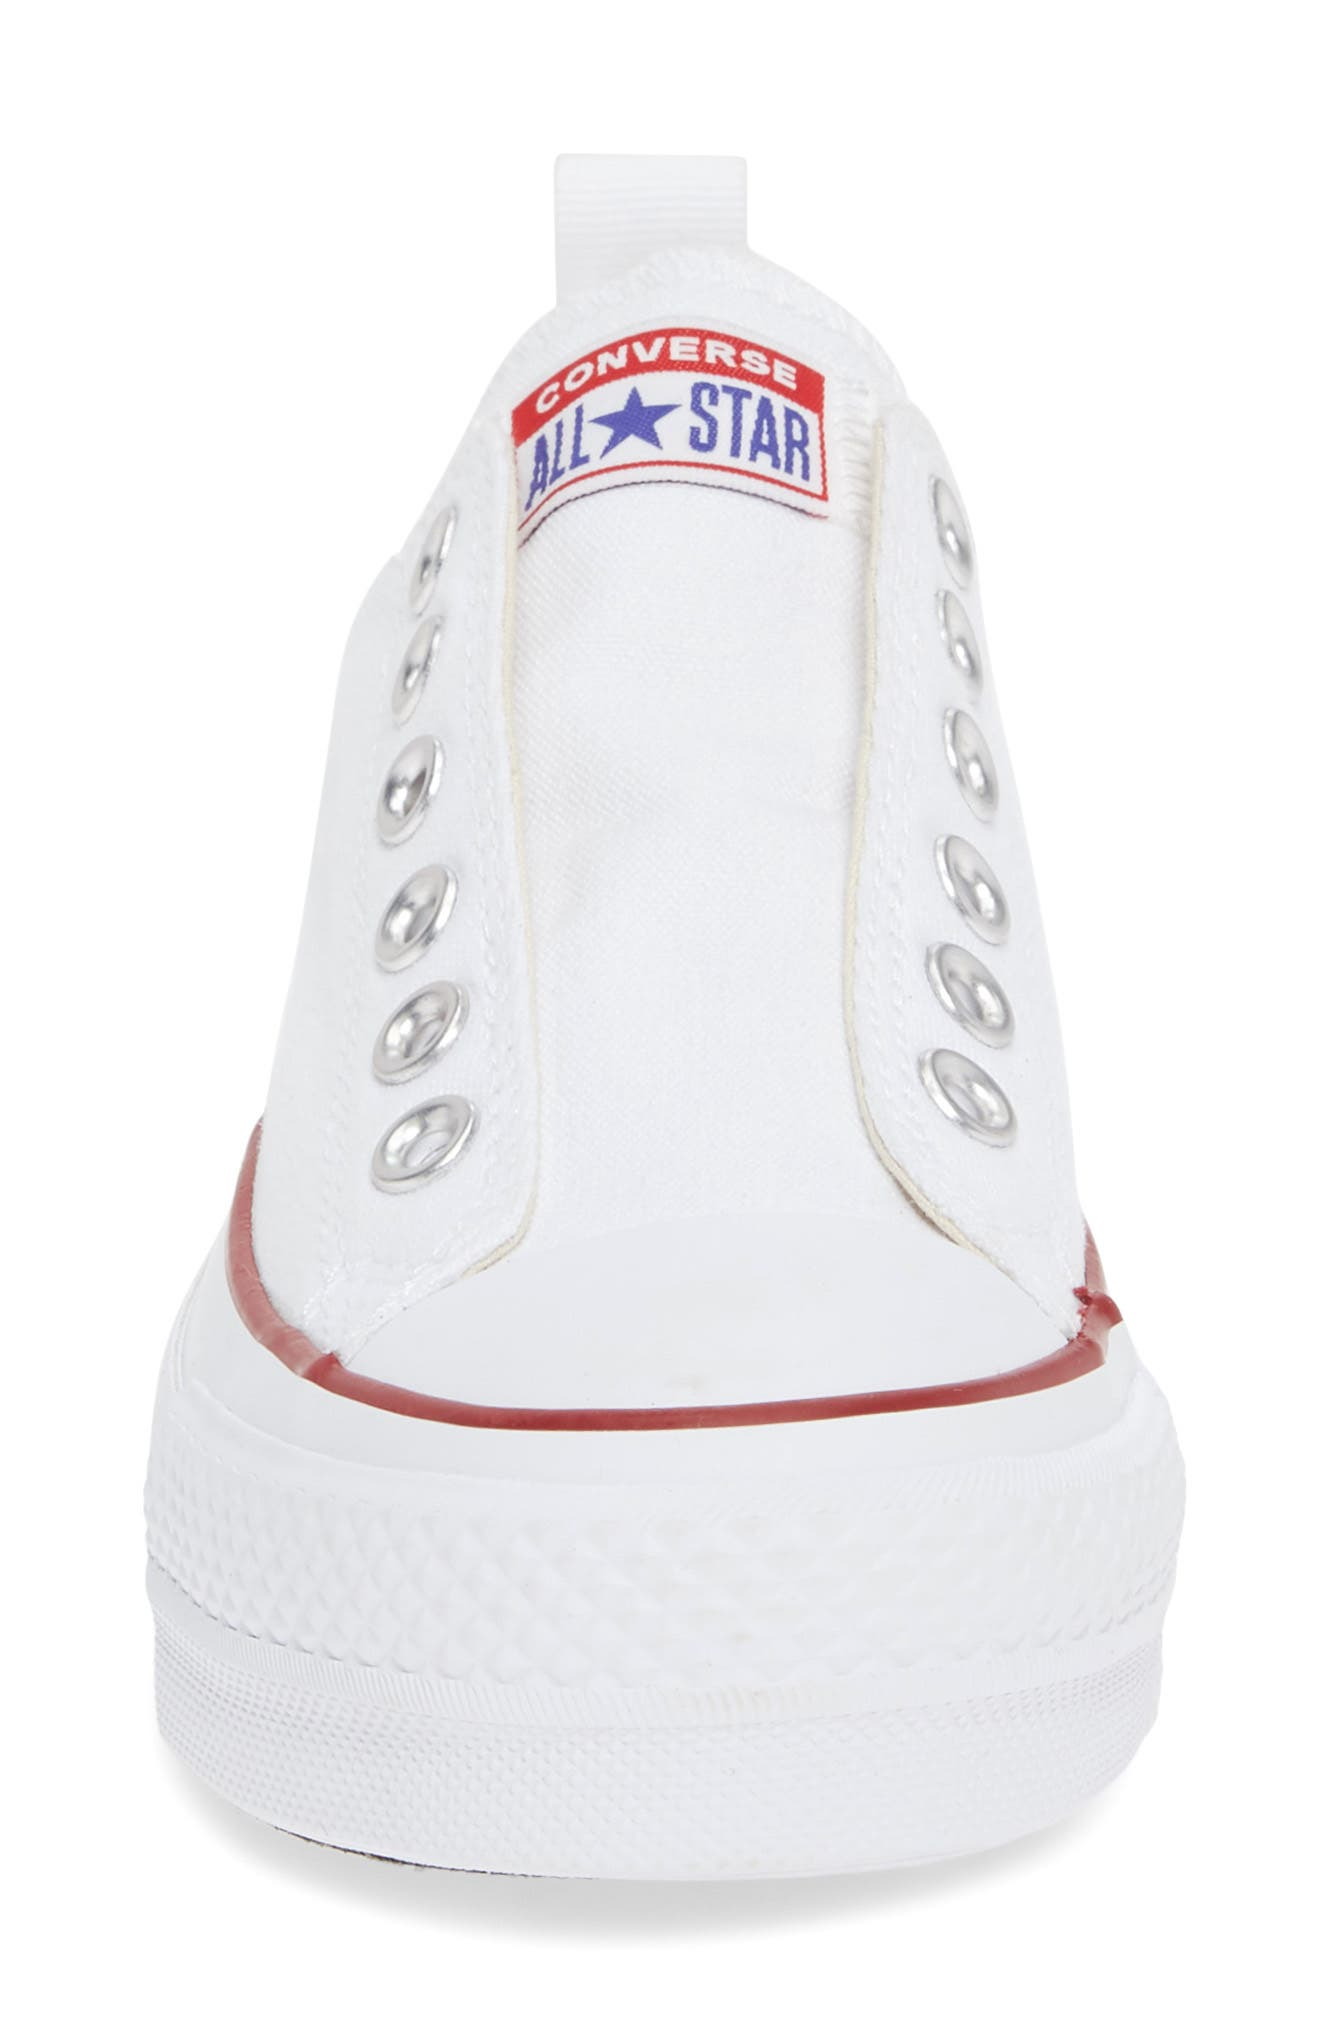 CONVERSE, Chuck Taylor<sup>®</sup> All Star<sup>®</sup> Low Top Sneaker, Alternate thumbnail 4, color, WHITE/ RED/ BLUE